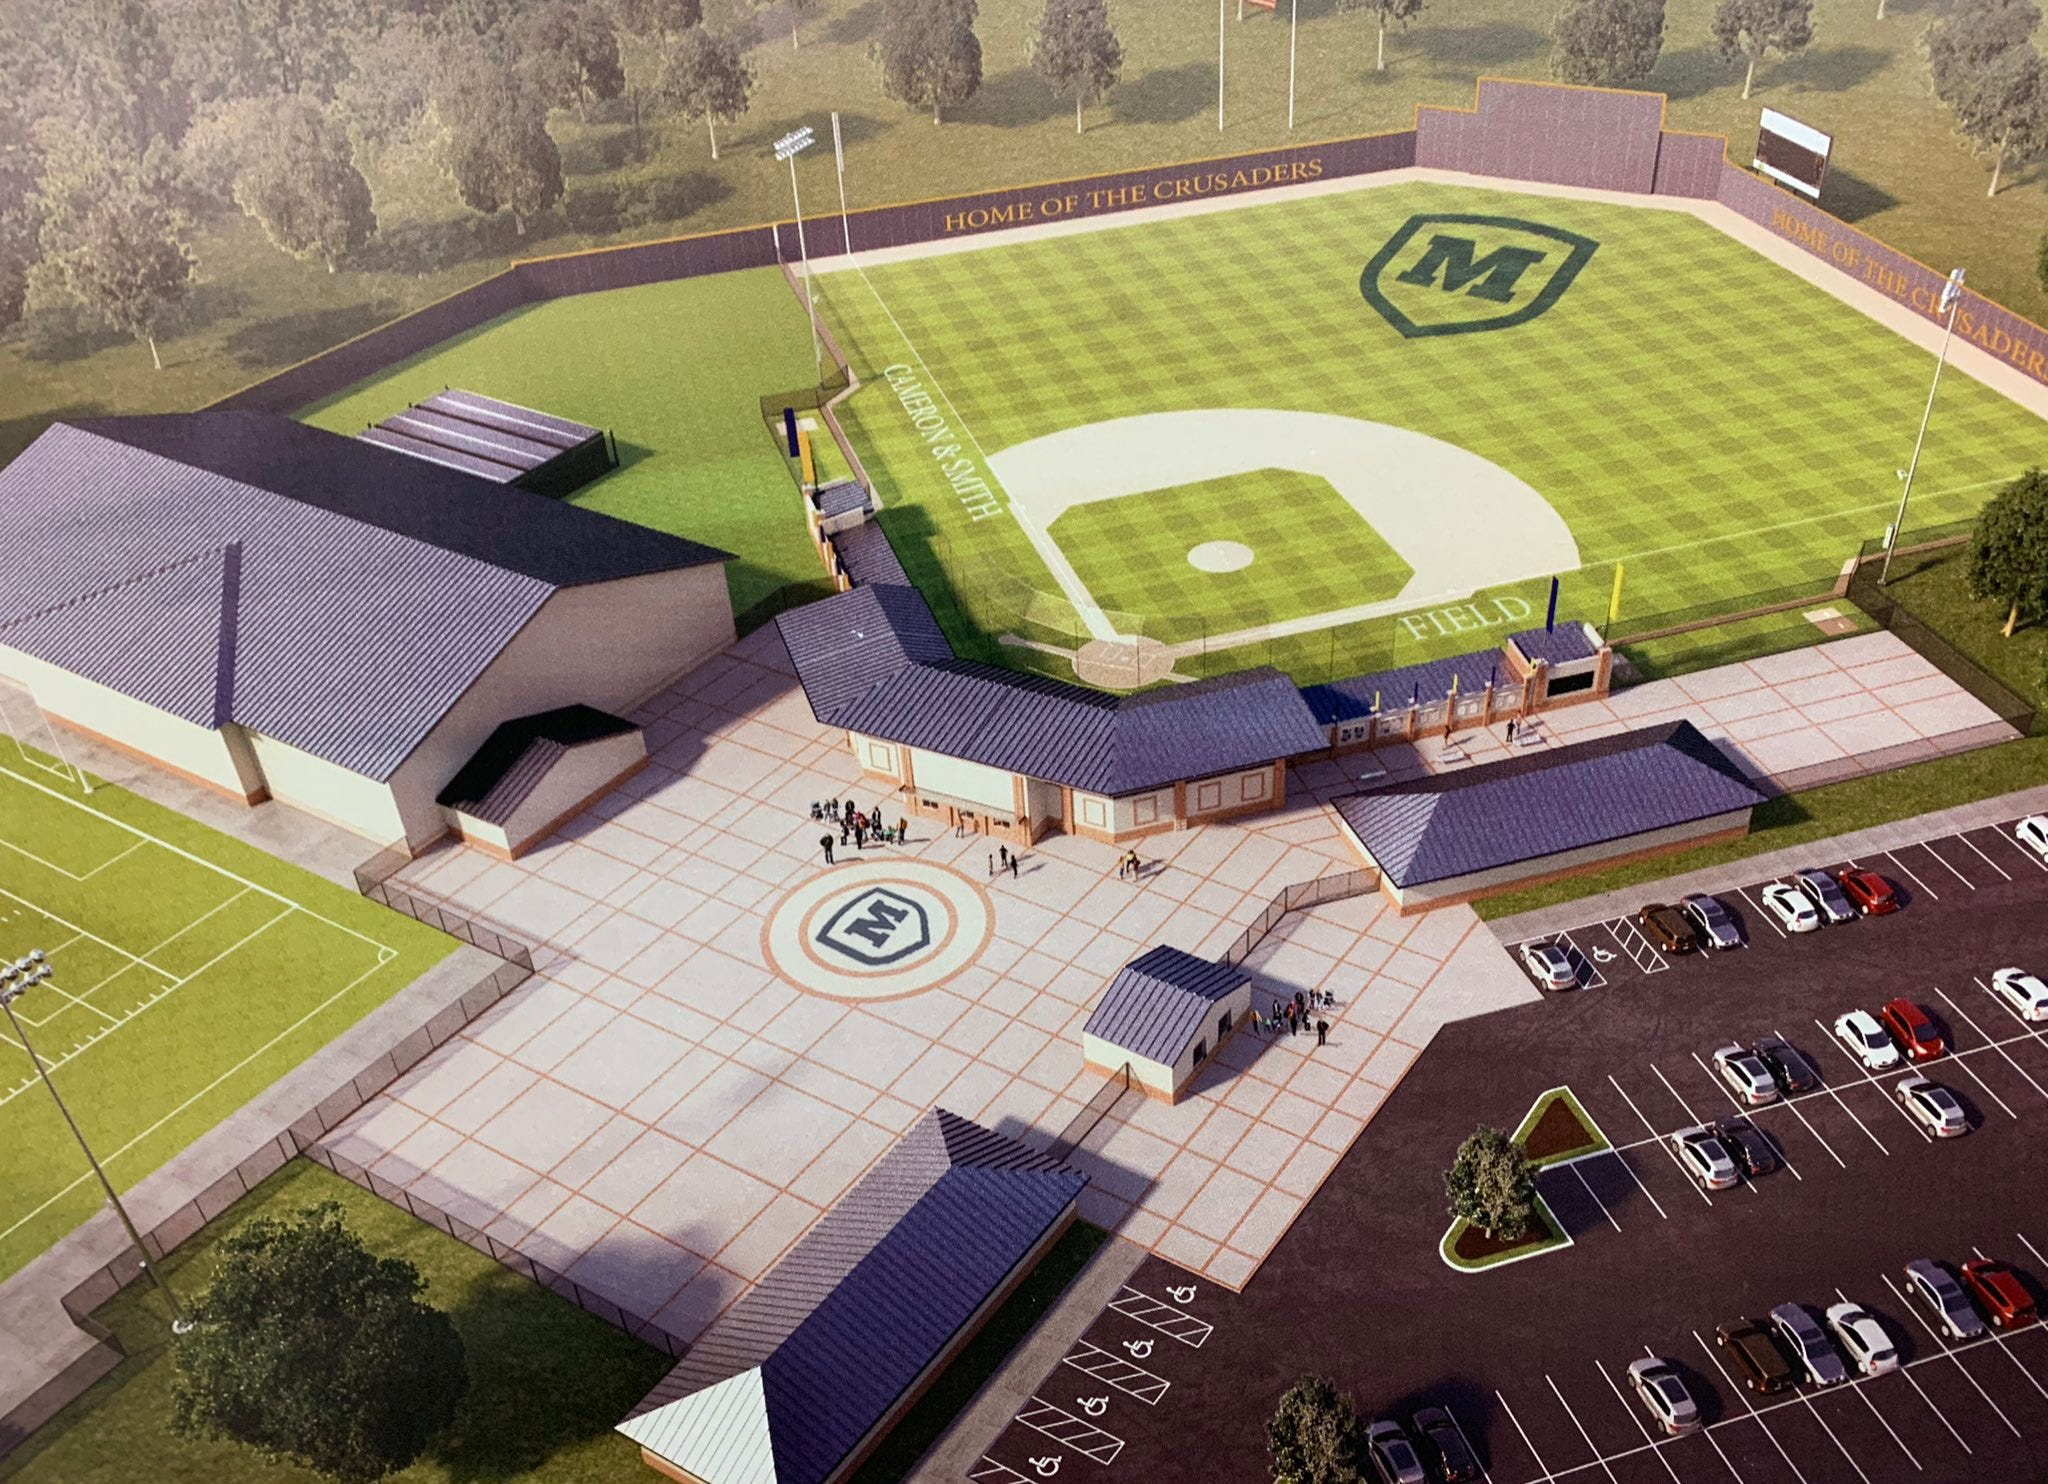 WATCH: New Moeller athletic complex to feature their own baseball stadium